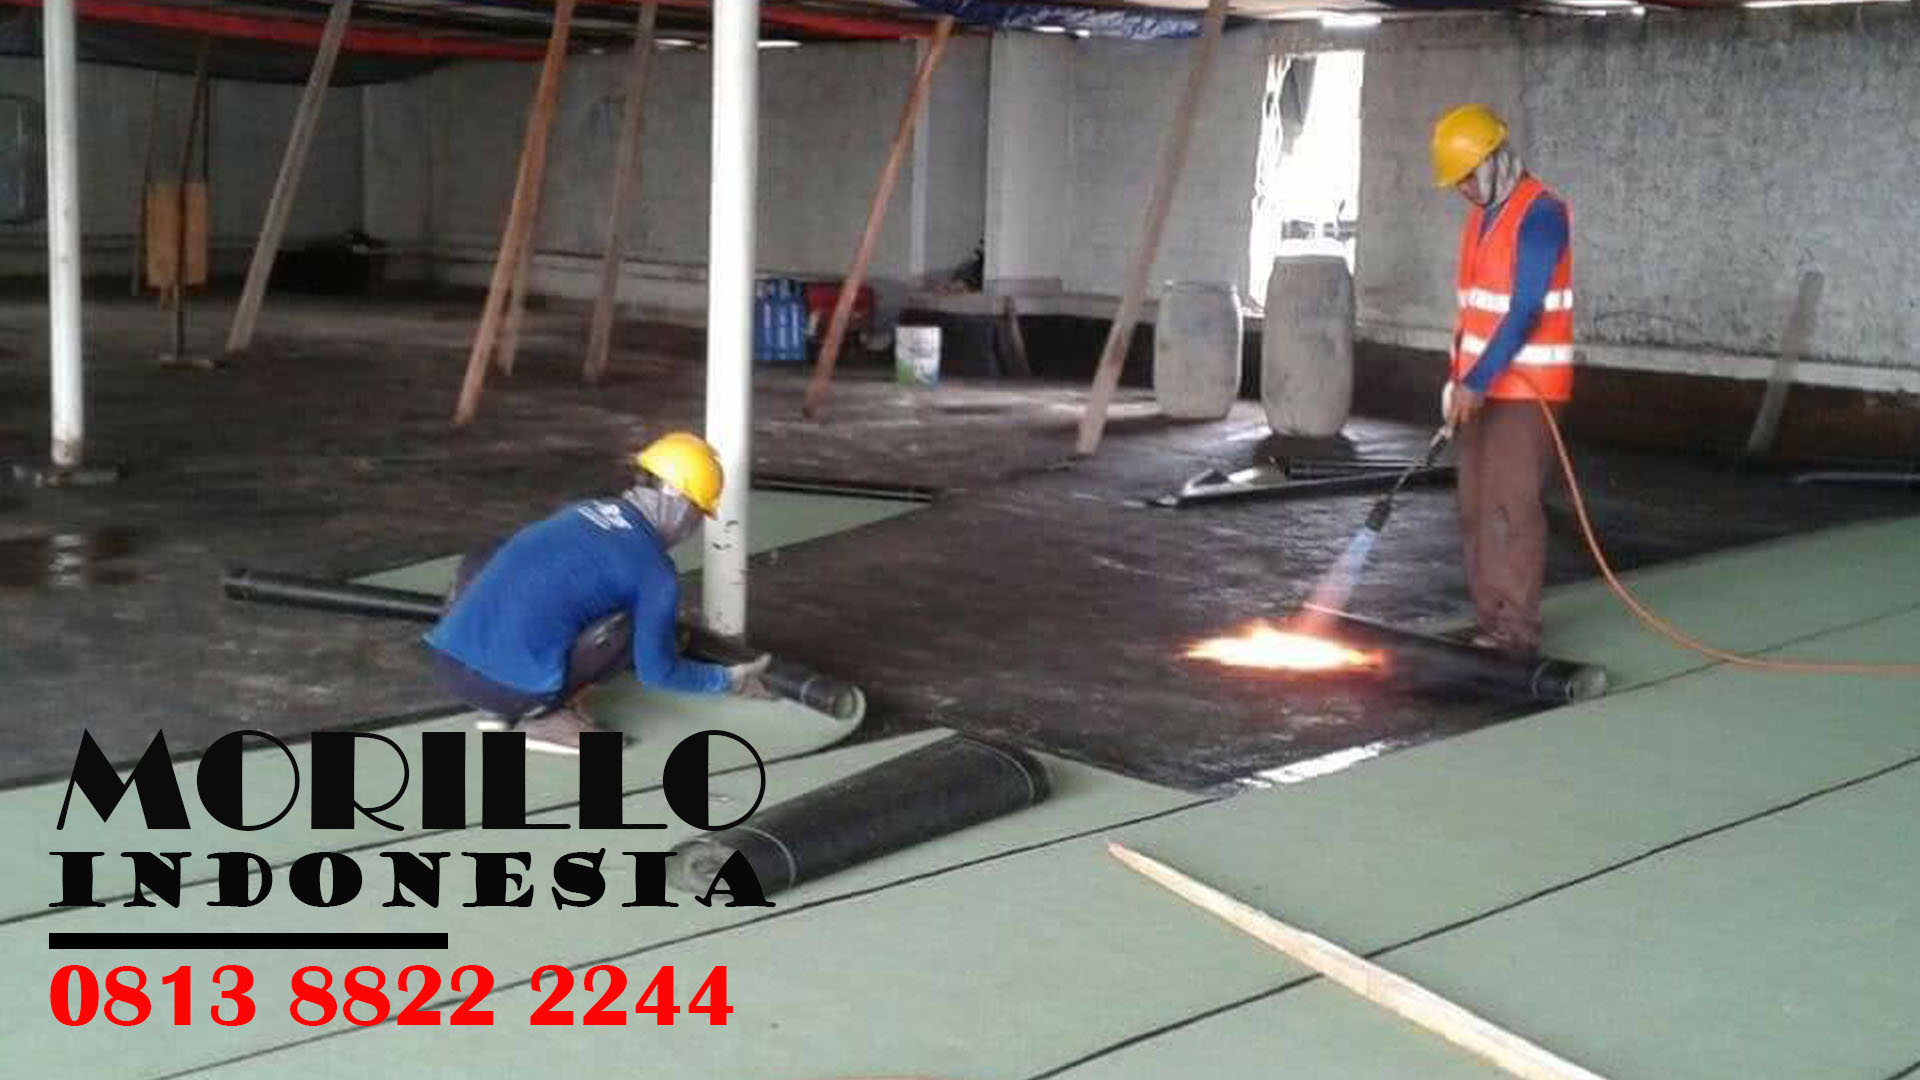 MEMBRAN WATERPROOFING ANTI BOCOR di KEBON BARU WA : 08 13 88 22 22 44